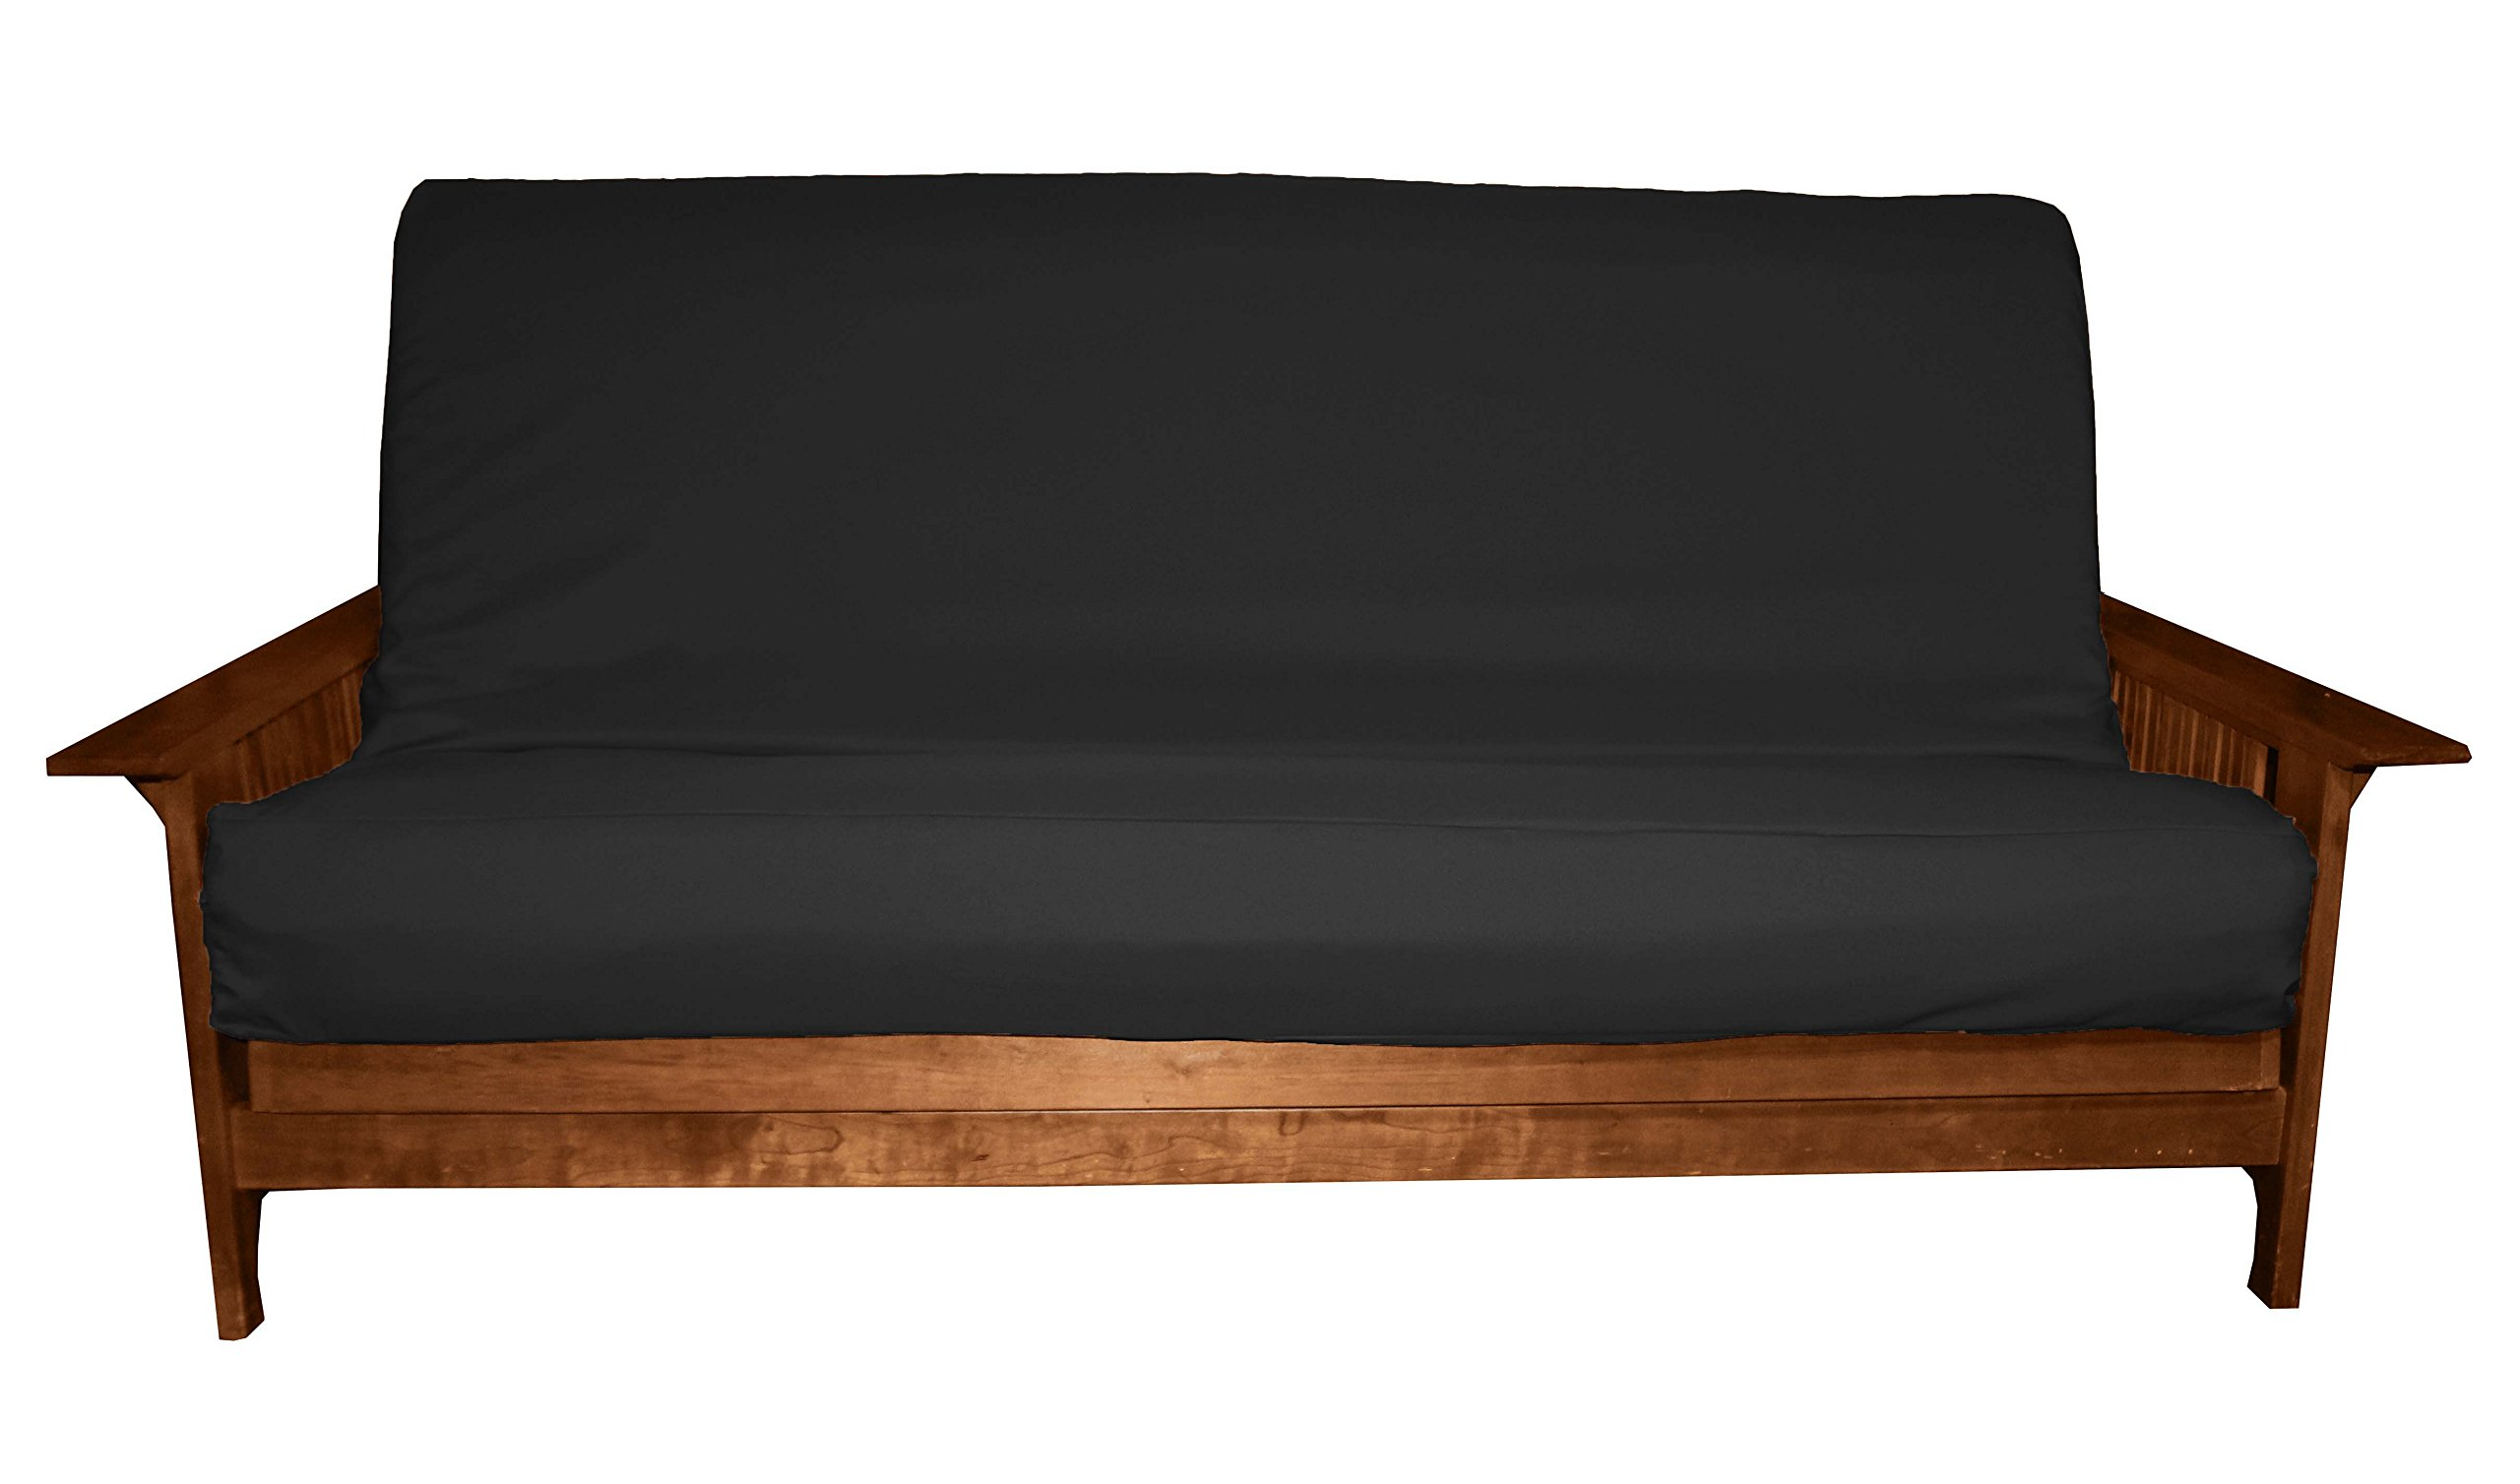 Better Fit Machine Washable Upholstery Grade Futon Cover , Queen 6-Inch-size, Twill Black